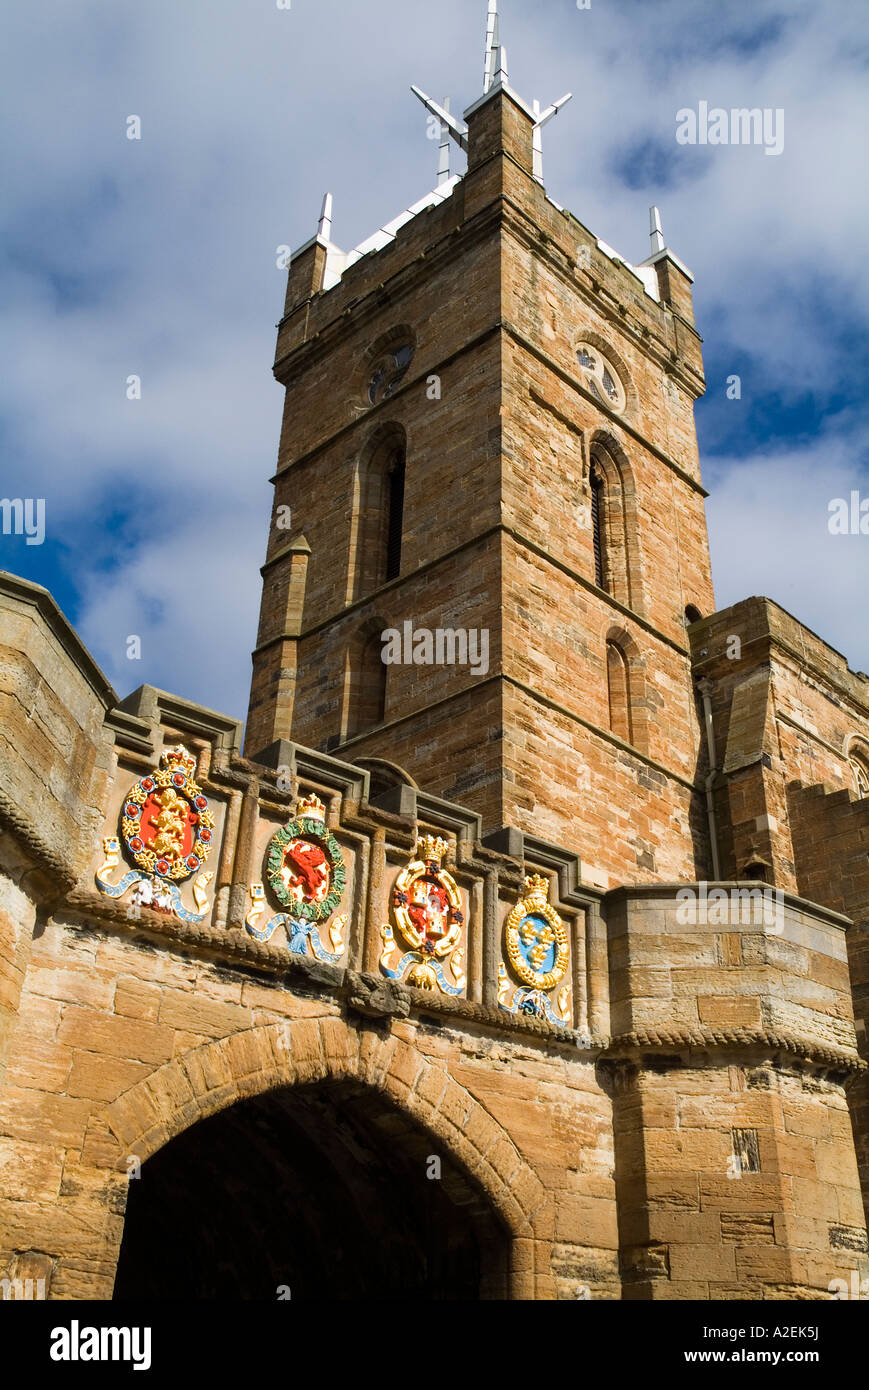 dh Palace outer gate LINLITHGOW WEST LOTHIAN Stone carved painted heraldry coat of arms entrance St Michaels historic church scotland uk medieval Stock Photo